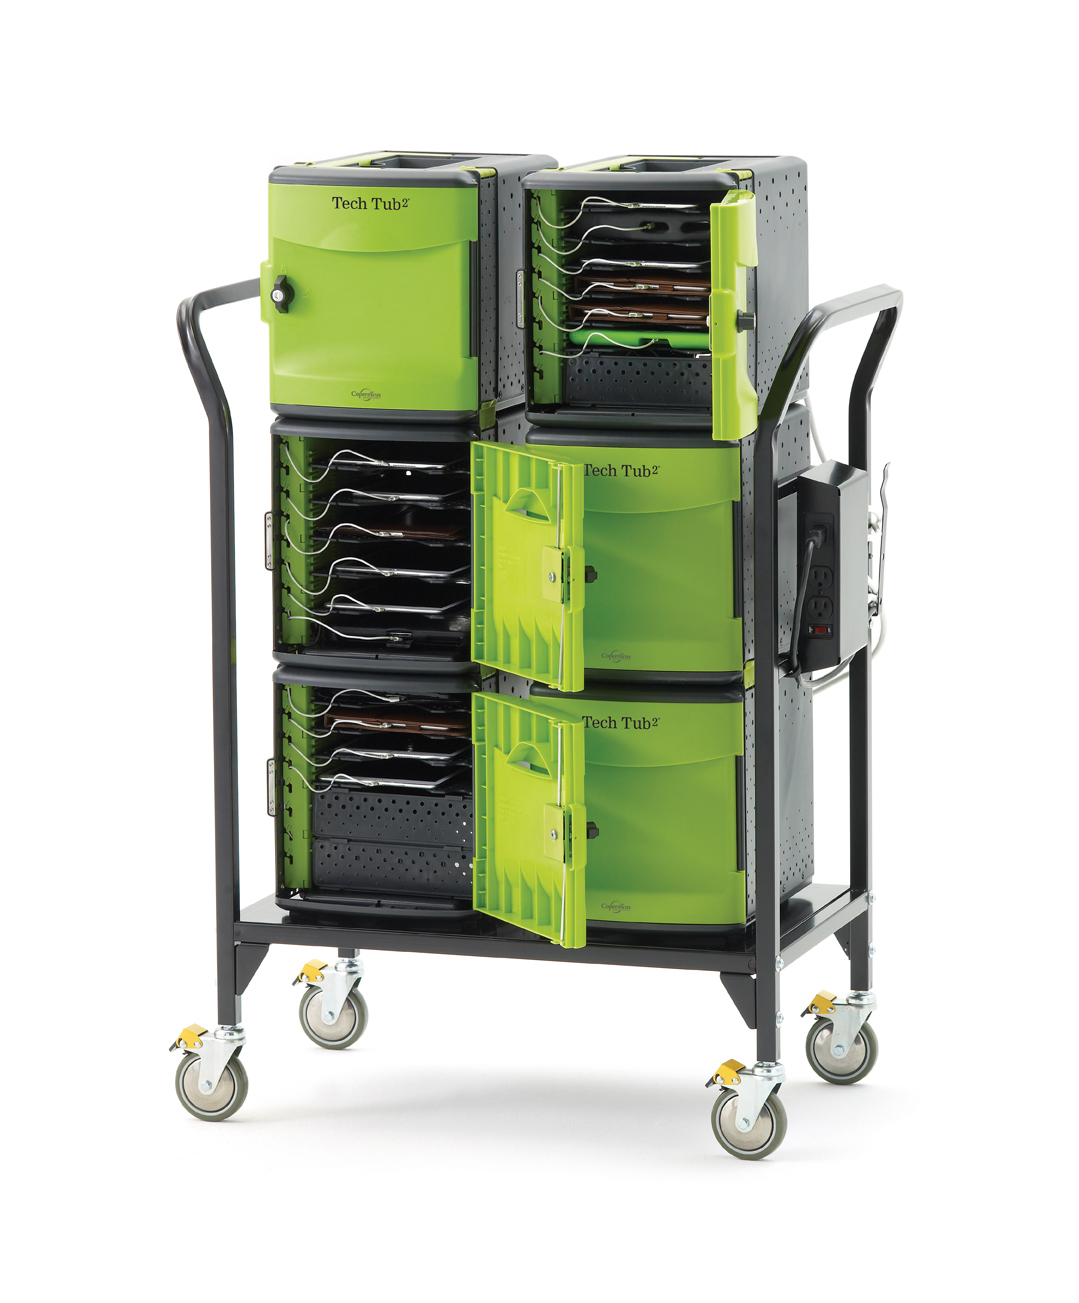 Modular Cart with 6 Premium TechTubs . Holds 32 devices